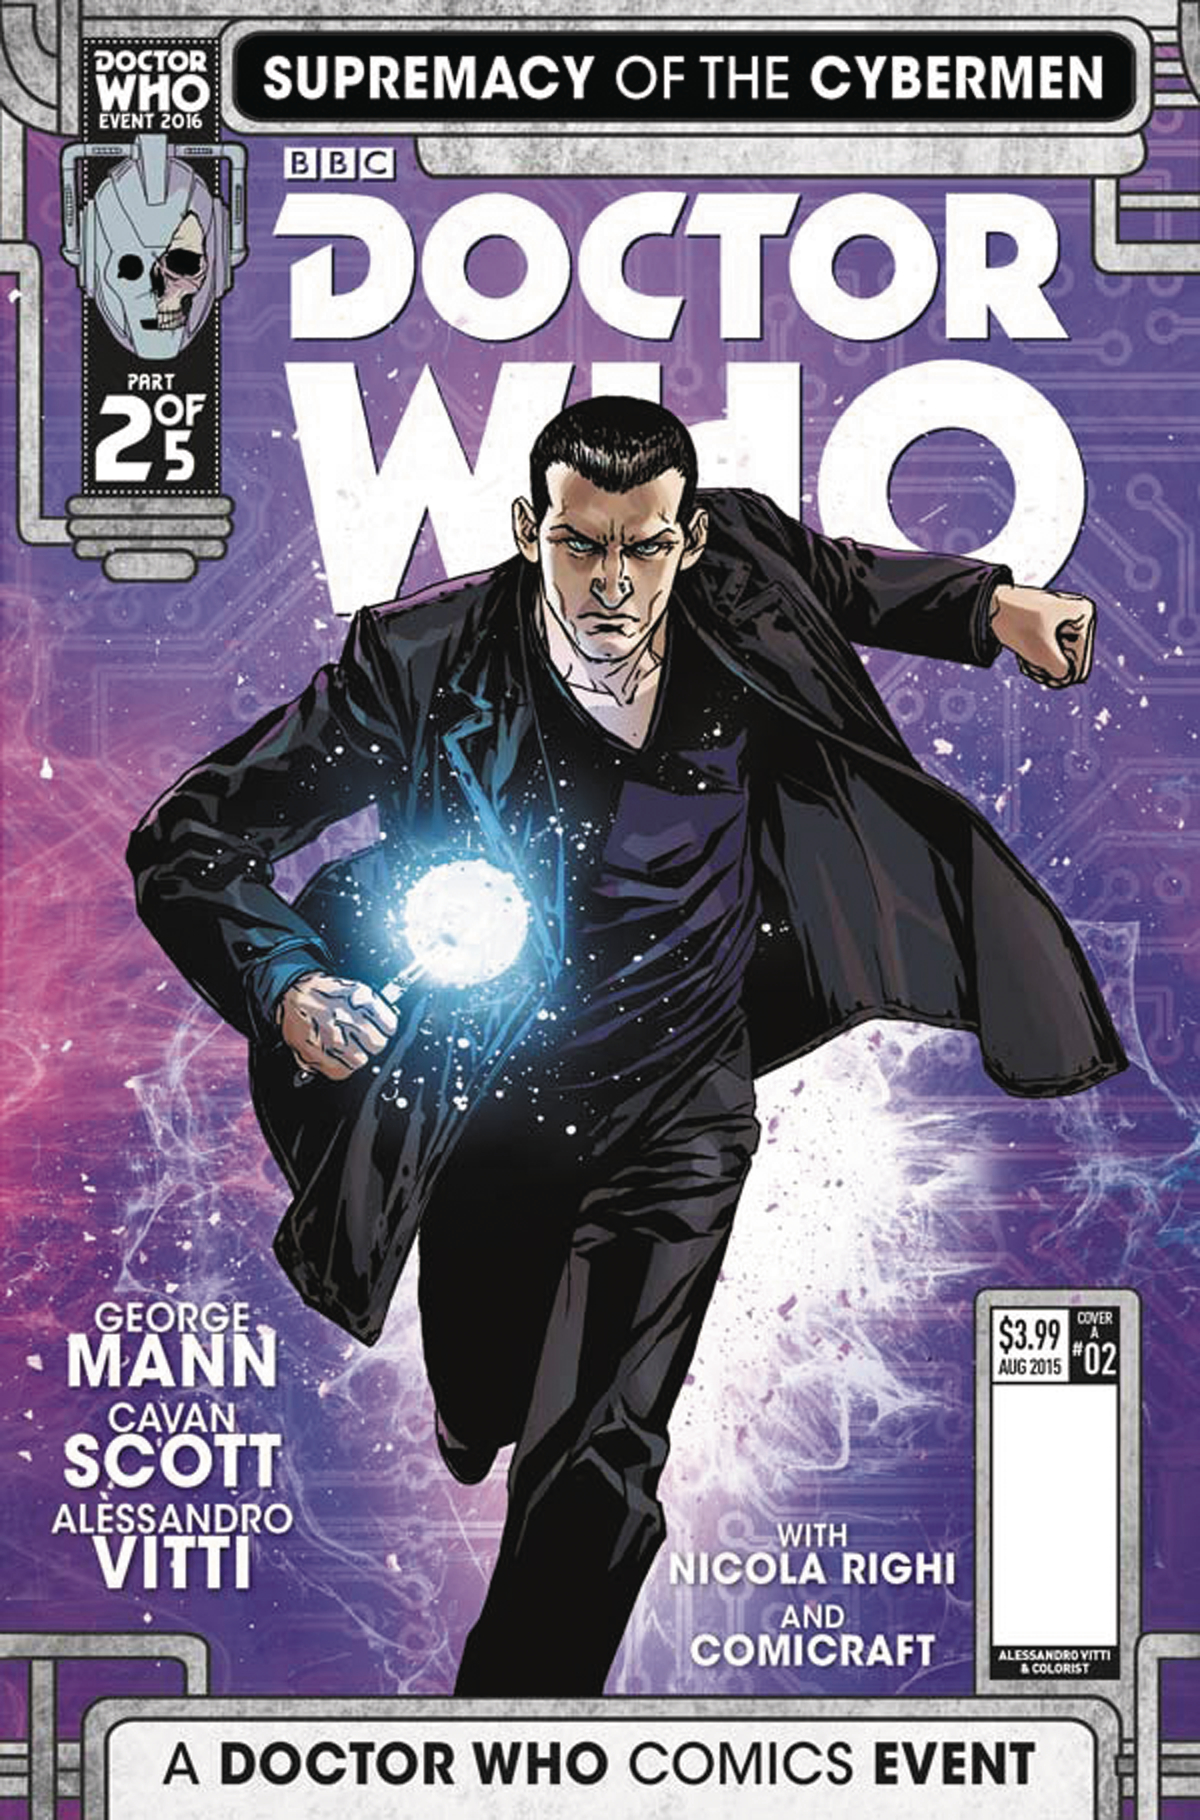 DOCTOR WHO SUPREMACY OF THE CYBERMEN #2 (OF 5) CVR A VITTI